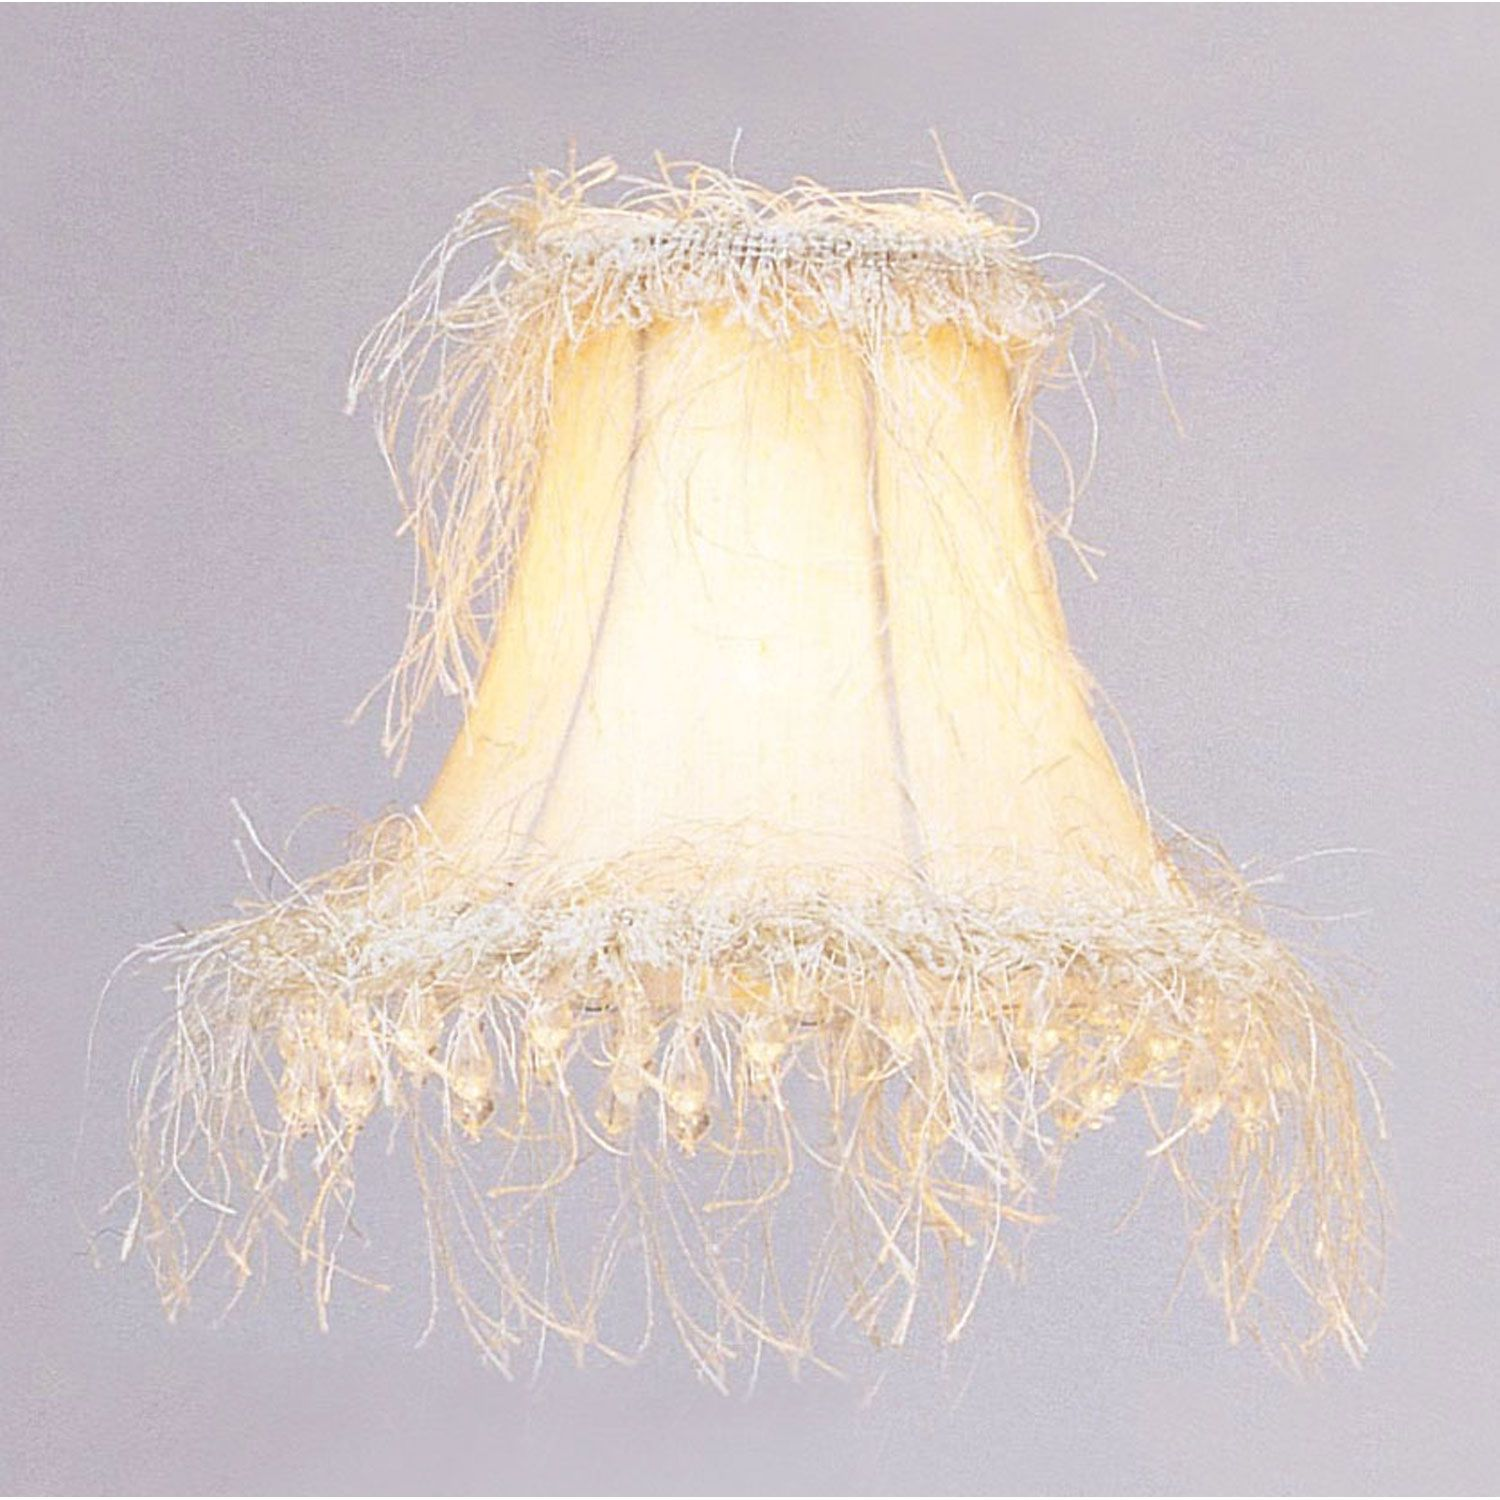 Livex lighting off white silk bell clip chandelier shade w corn livex lighting off white silk bell clip chandelier shade w corn silk fringe beads on sale mozeypictures Choice Image